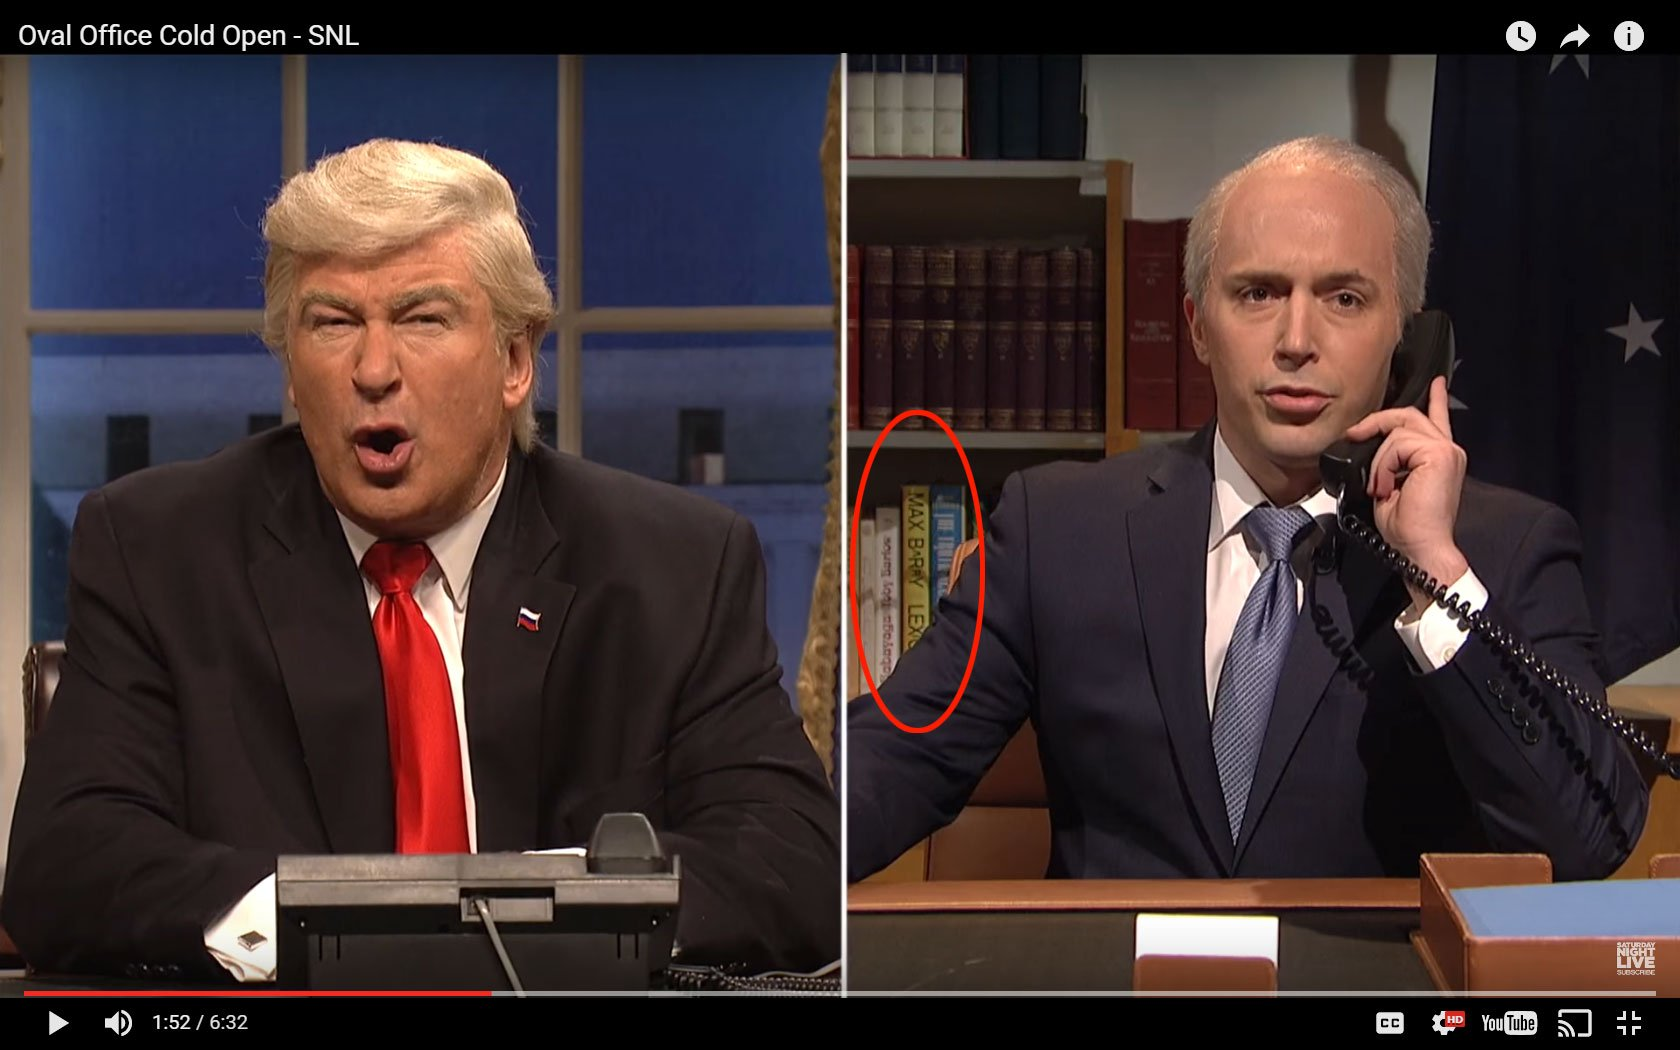 Saturday Night Live sketch of Trump vs Turnbull phone call with Lexicon by Max Barry visible on shelves behind the Australian Prime Minister